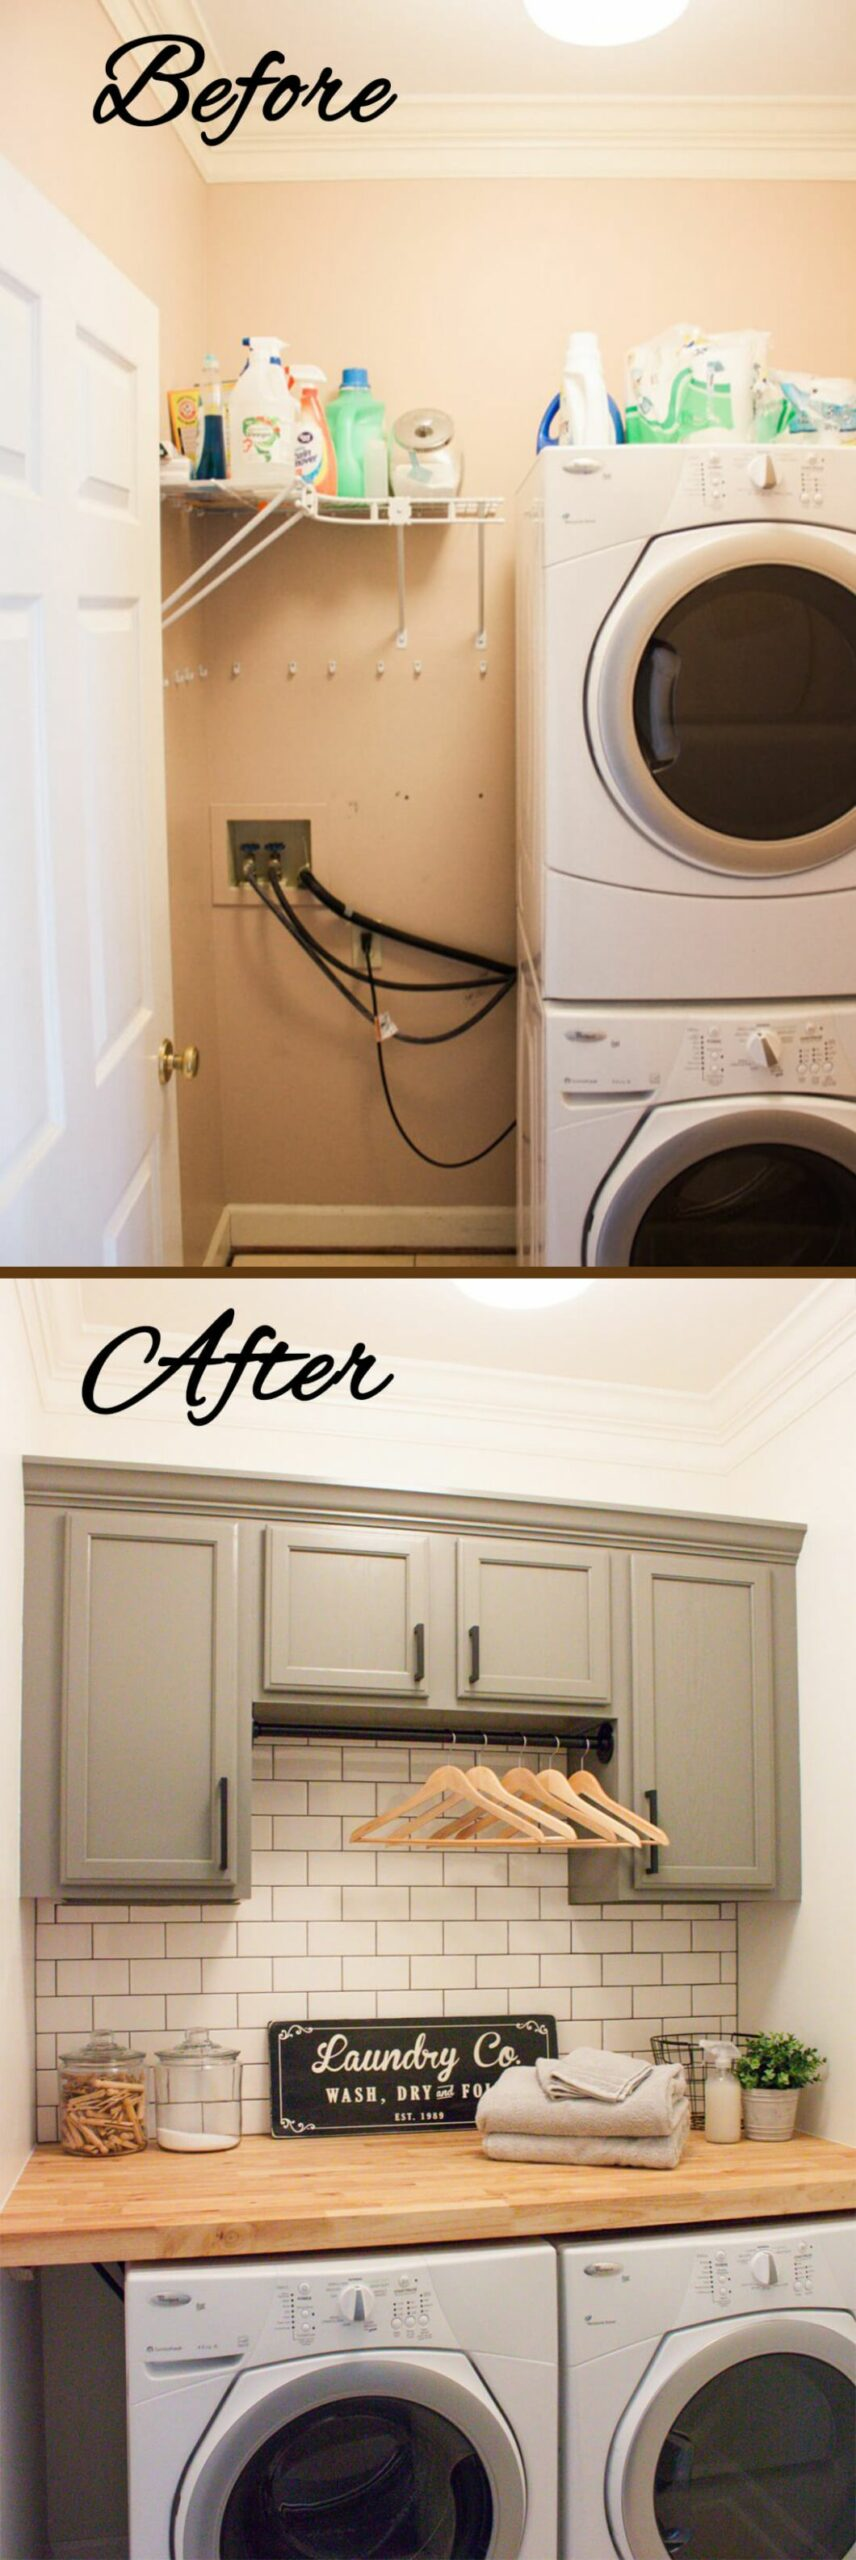 11 Best Budget Friendly Laundry Room Makeover Ideas and Designs ..